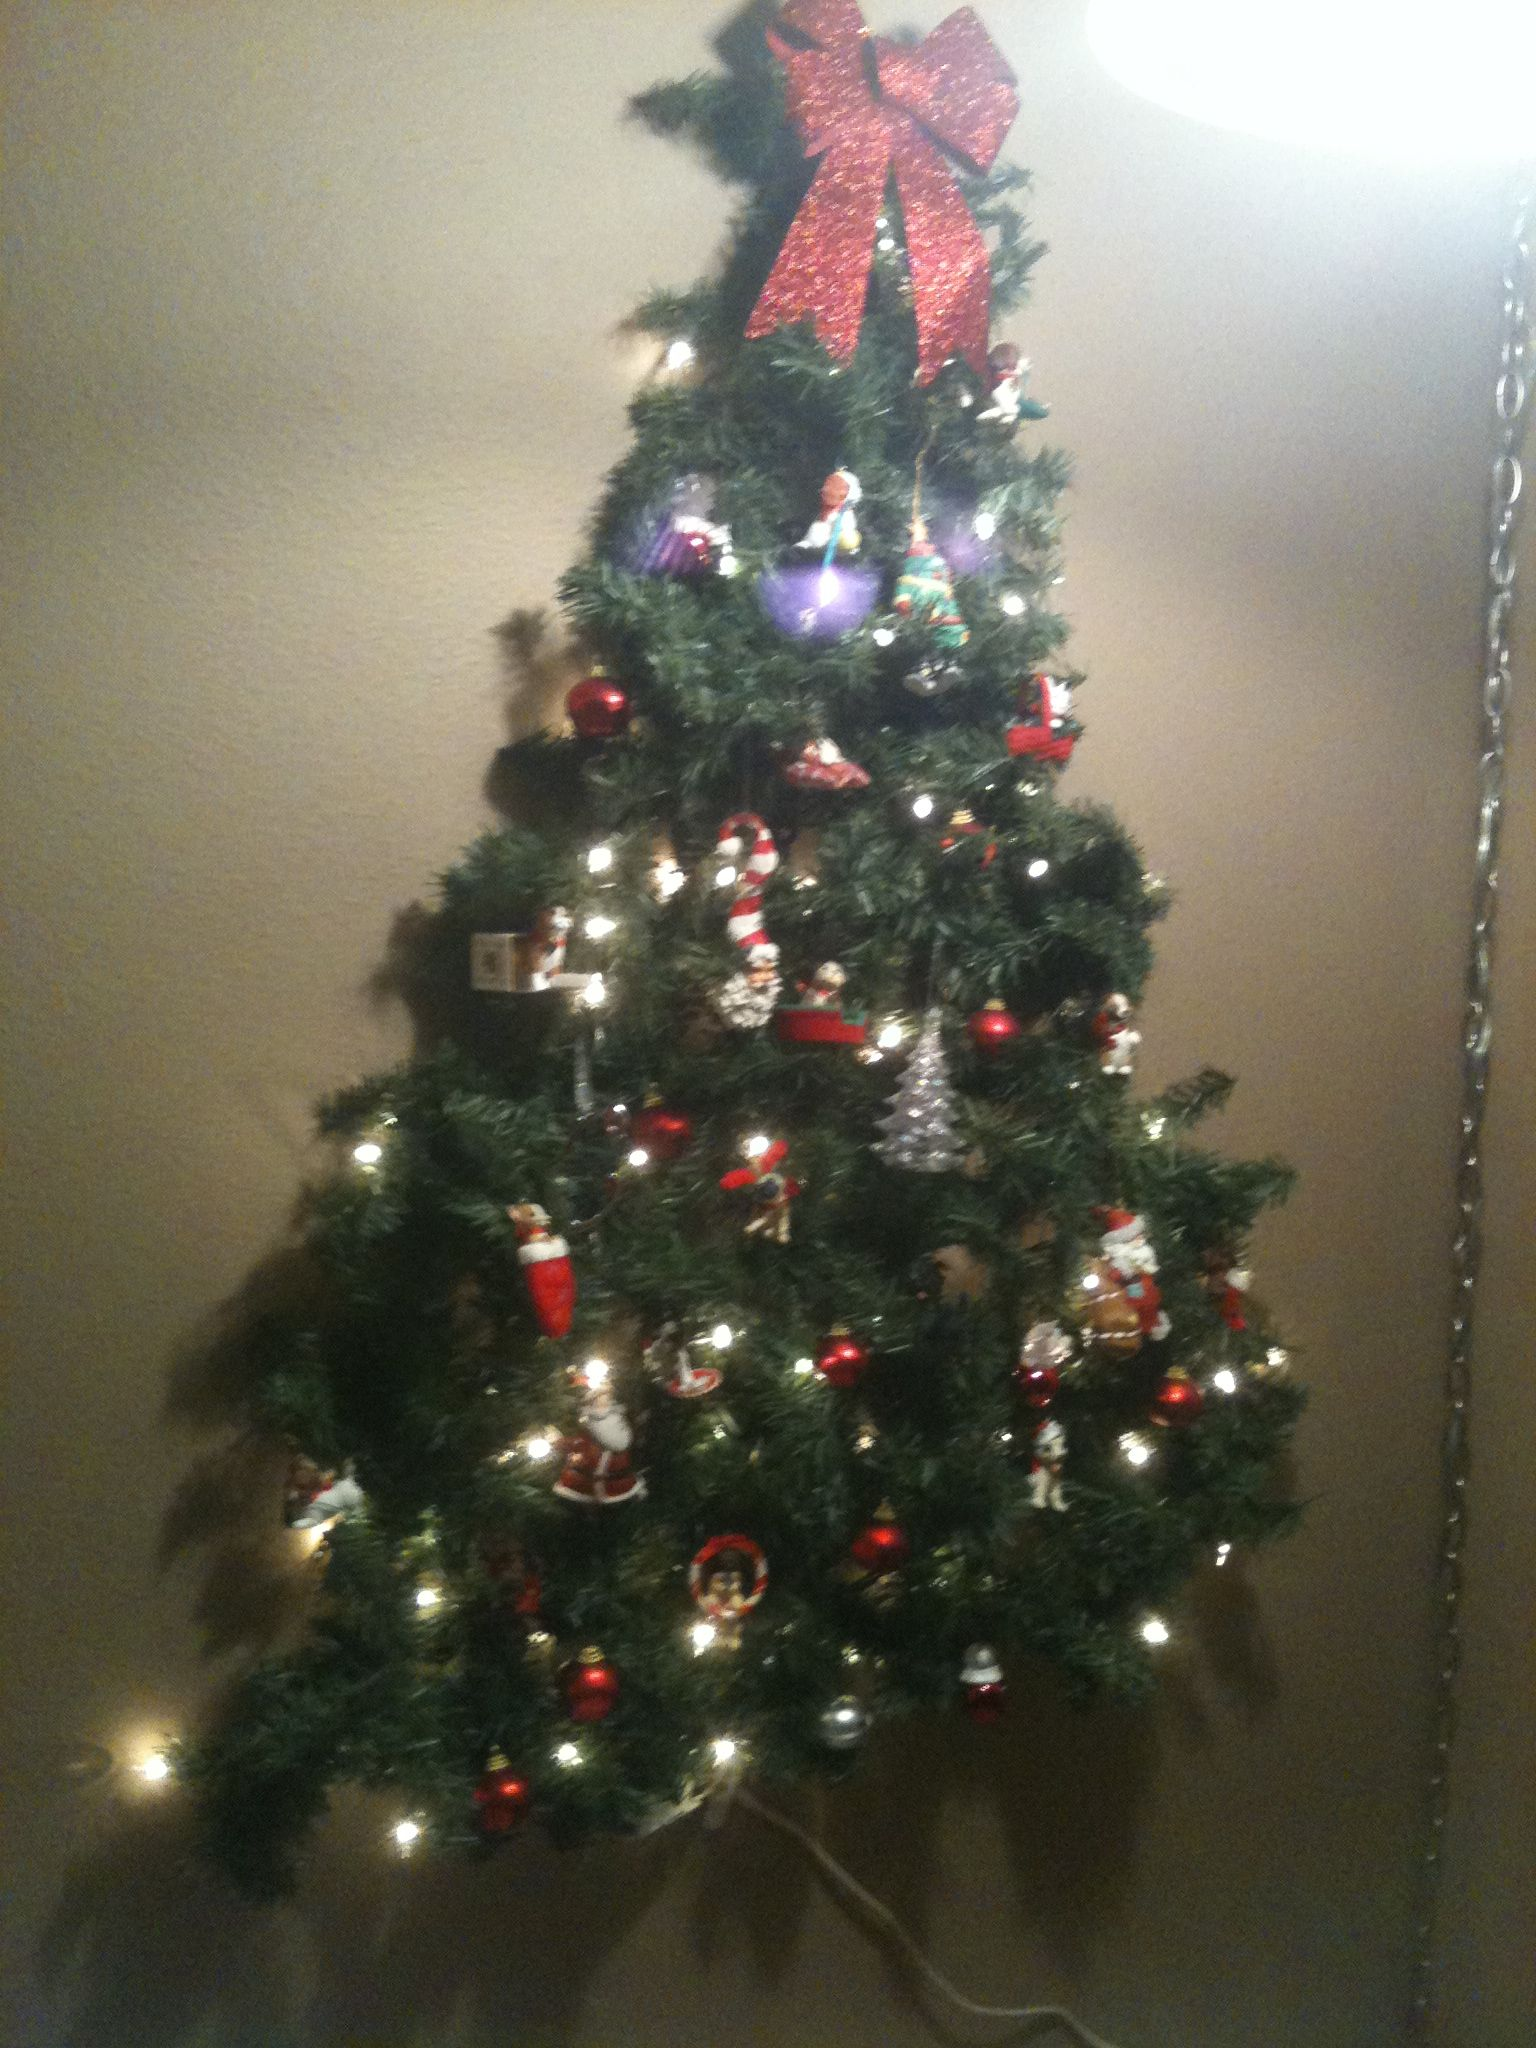 Kid Friendly Christmas Tree On The Wall Command Strip Hooks And Lighted Garland With Ornaments Diy Christmas Wall Wall Christmas Tree Christmas Tree